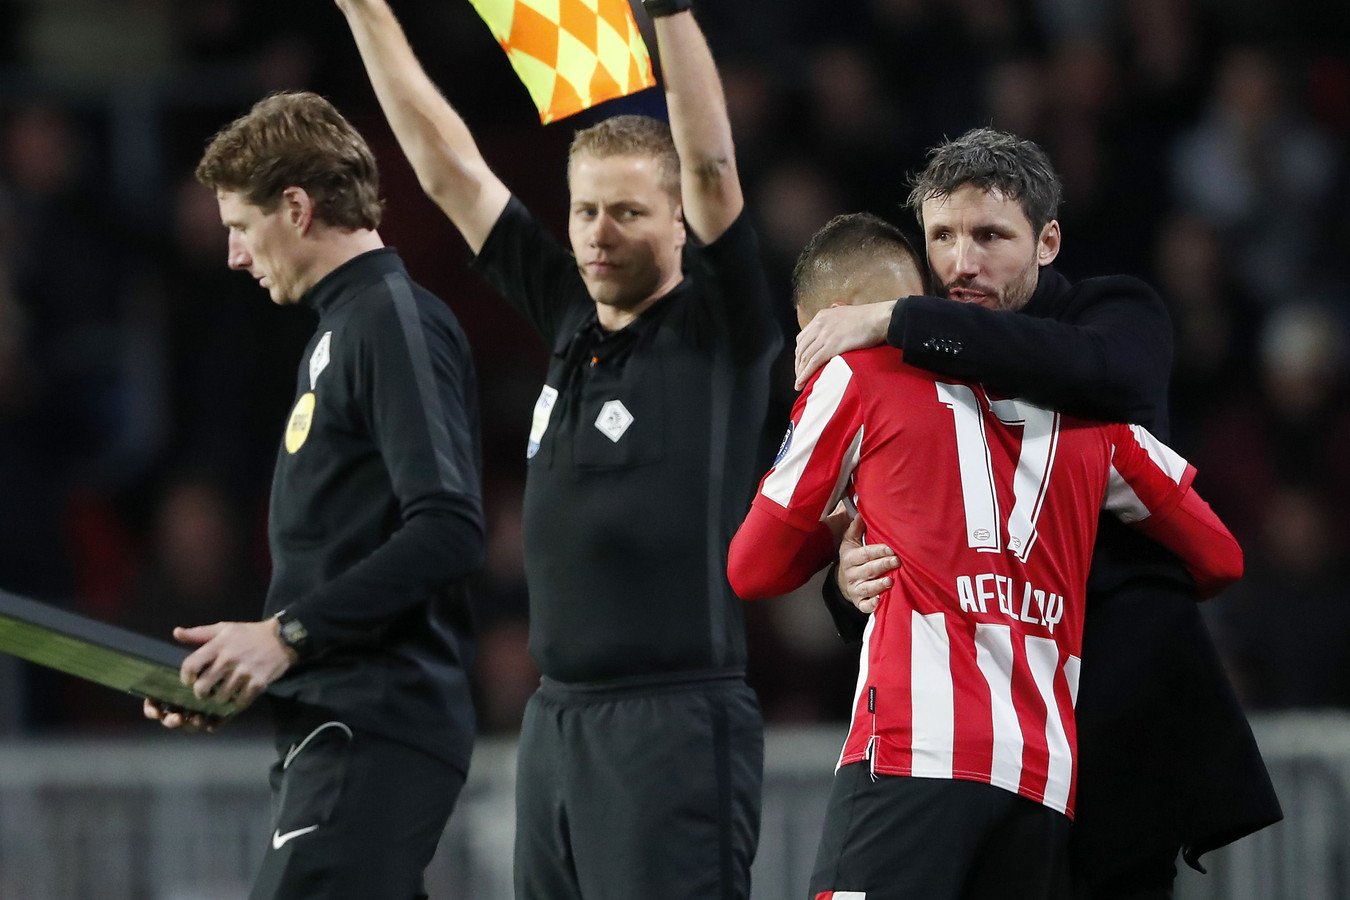 2019-12-07 21:24:34 (L-R) Ibrahim Afellay of PSV, PSV coach Mark van Bommel during the Dutch Eredivisie match between PSV Eindhoven and Fortuna Sittard at the Phillips stadium on December 07, 2019 in Eindhoven, The Netherlands ANP SPORT